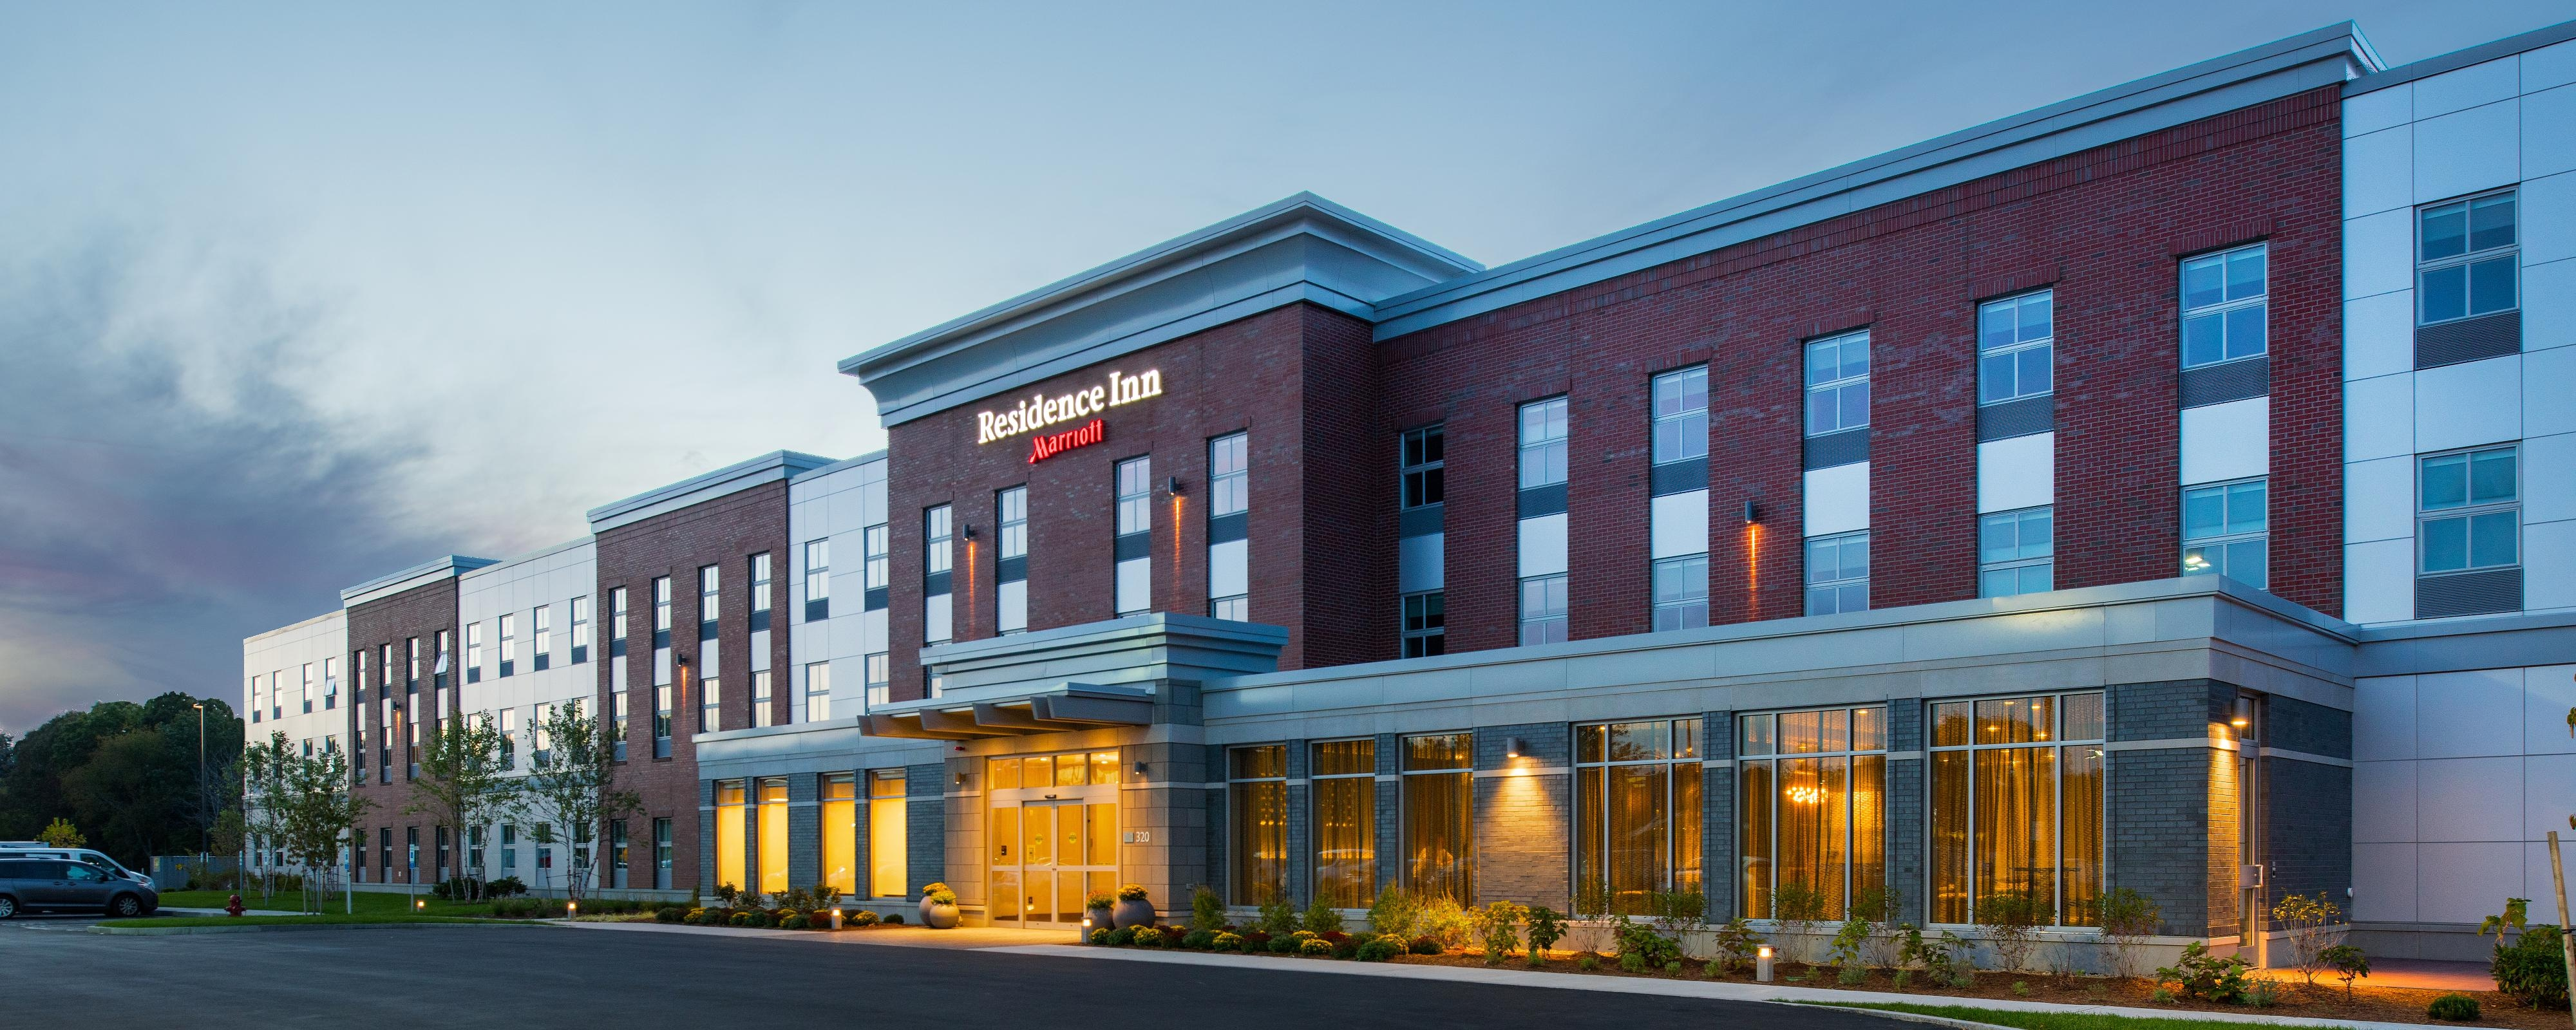 Extended stay hotel in Concord, MA | Residence Inn Boston Concord